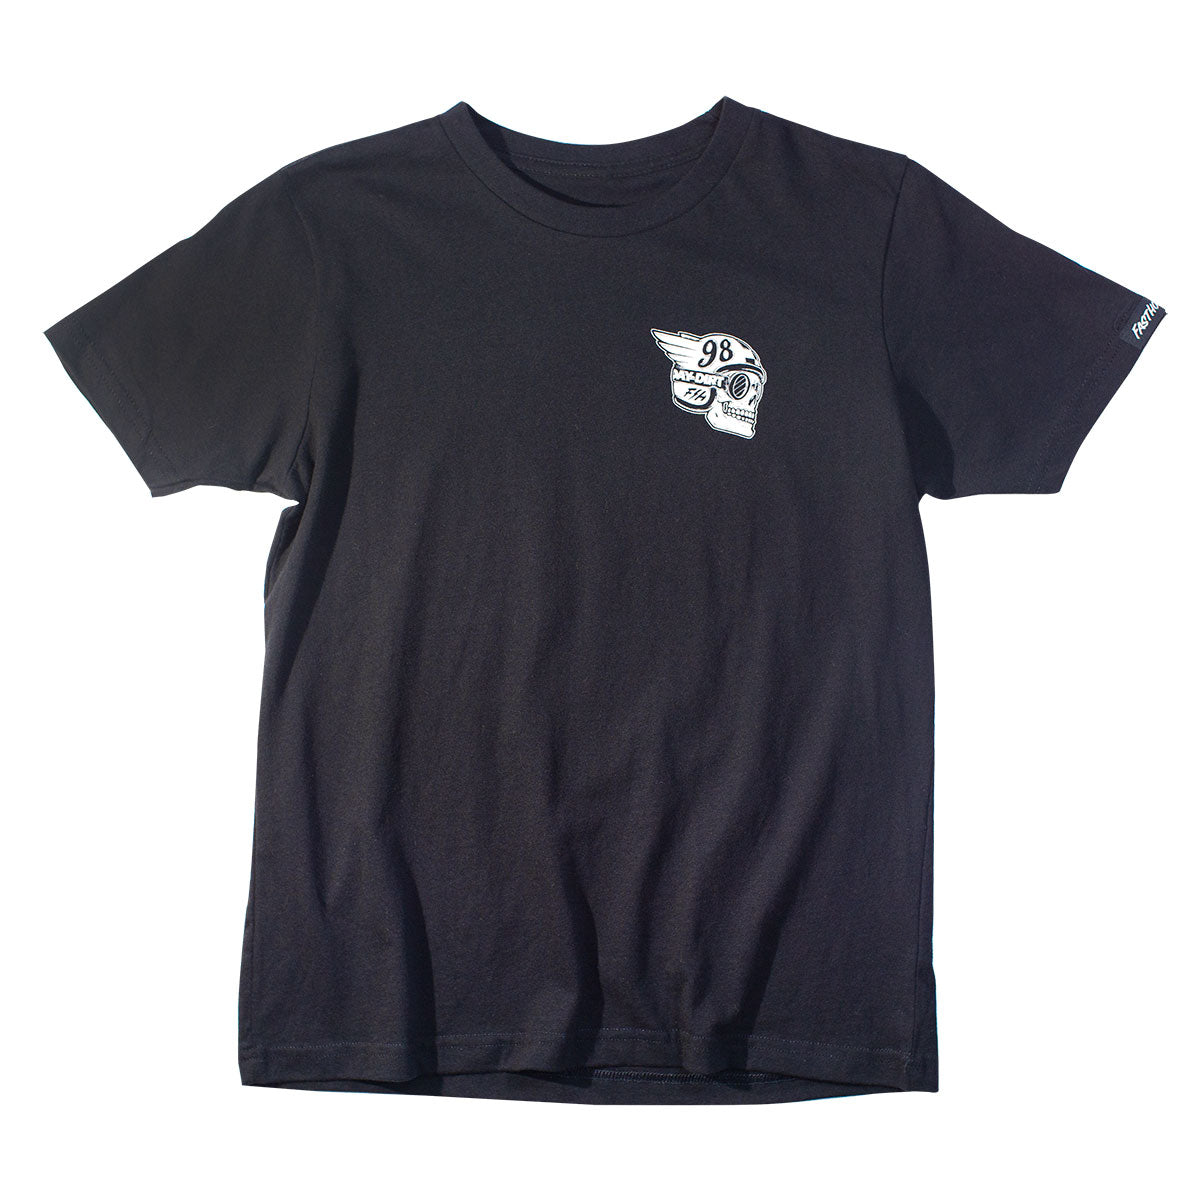 Fasthouse - Day in the Dirt Victory Tee - Black